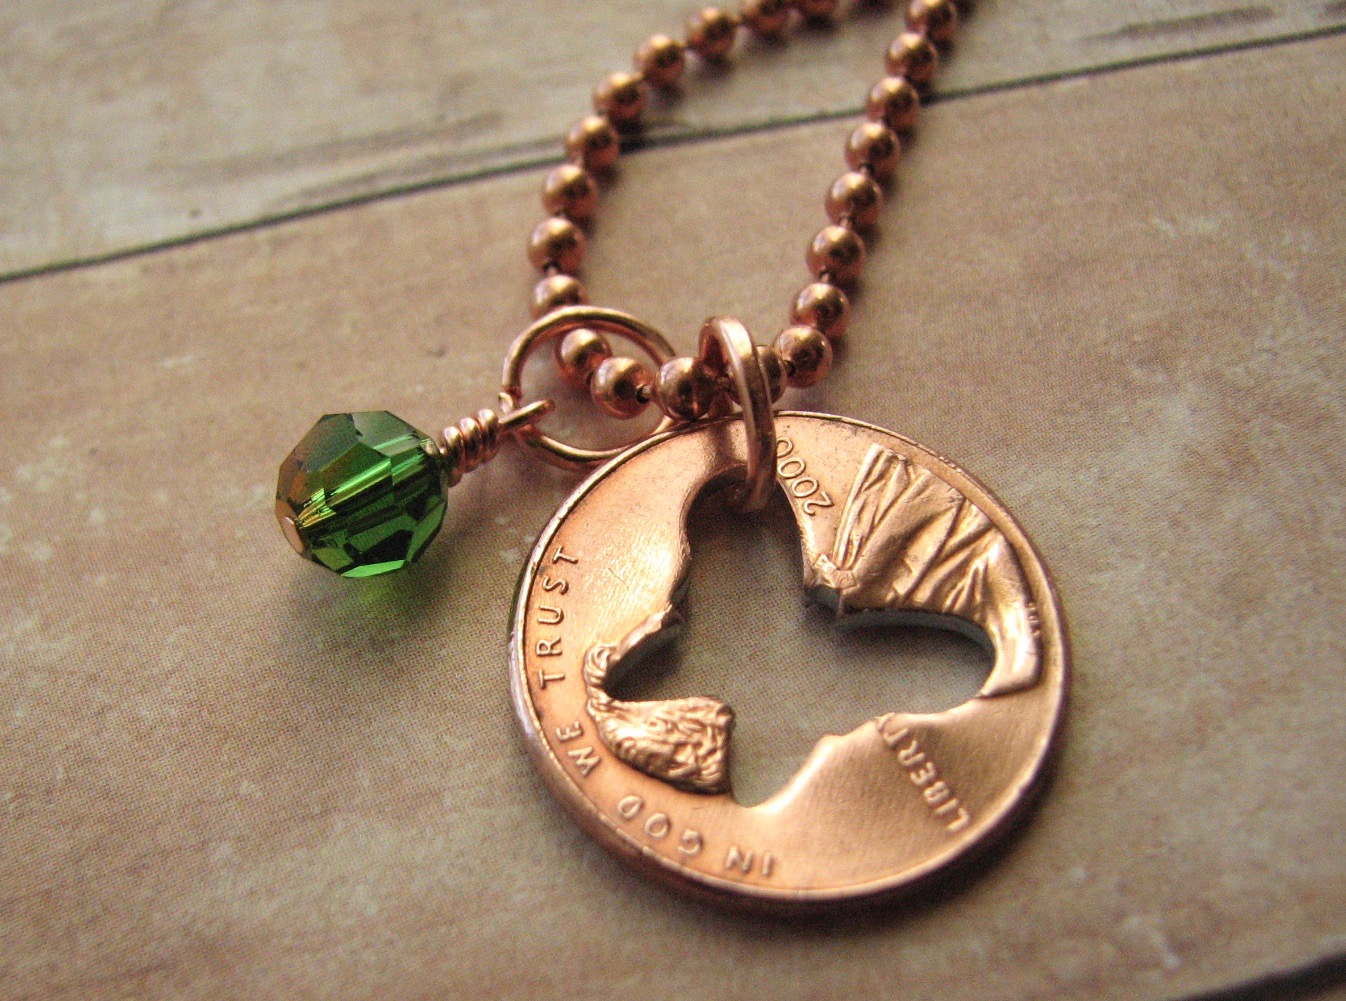 Stamped Penny from Heaven Necklace - The Butterfly